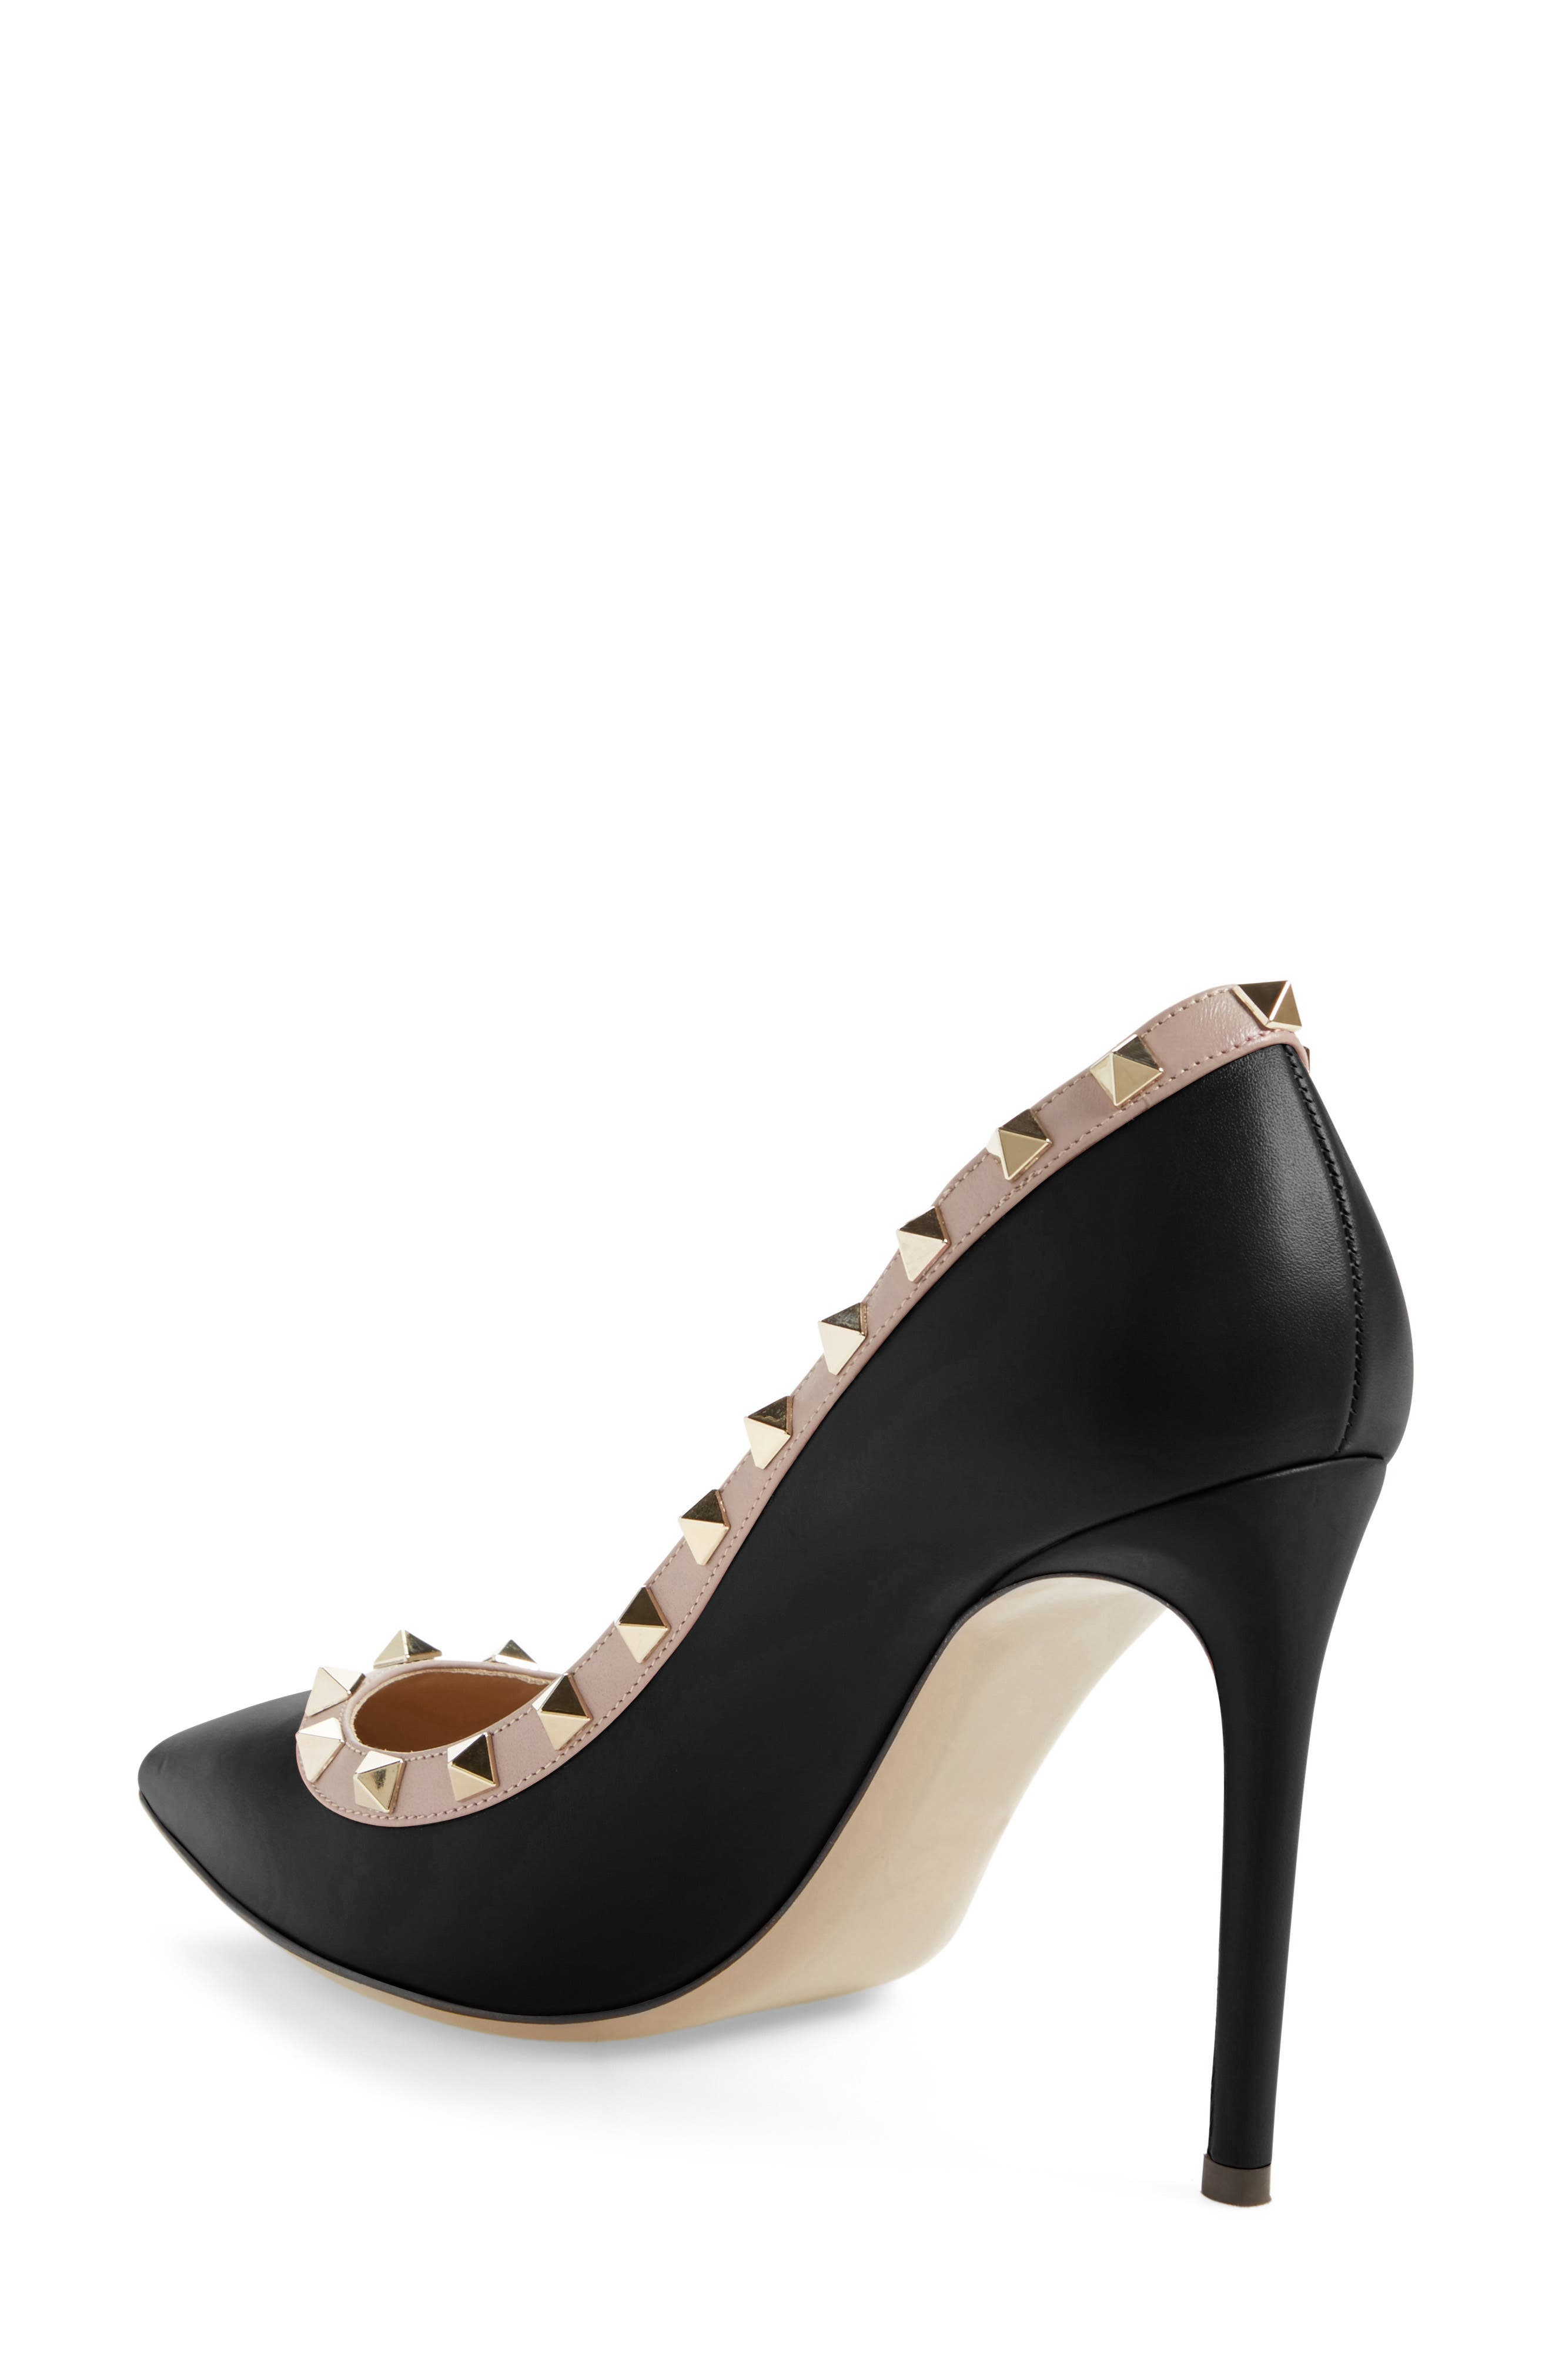 Rockstud Pointed Pump,                             Alternate thumbnail 2, color,                             Black/ Nude Leather